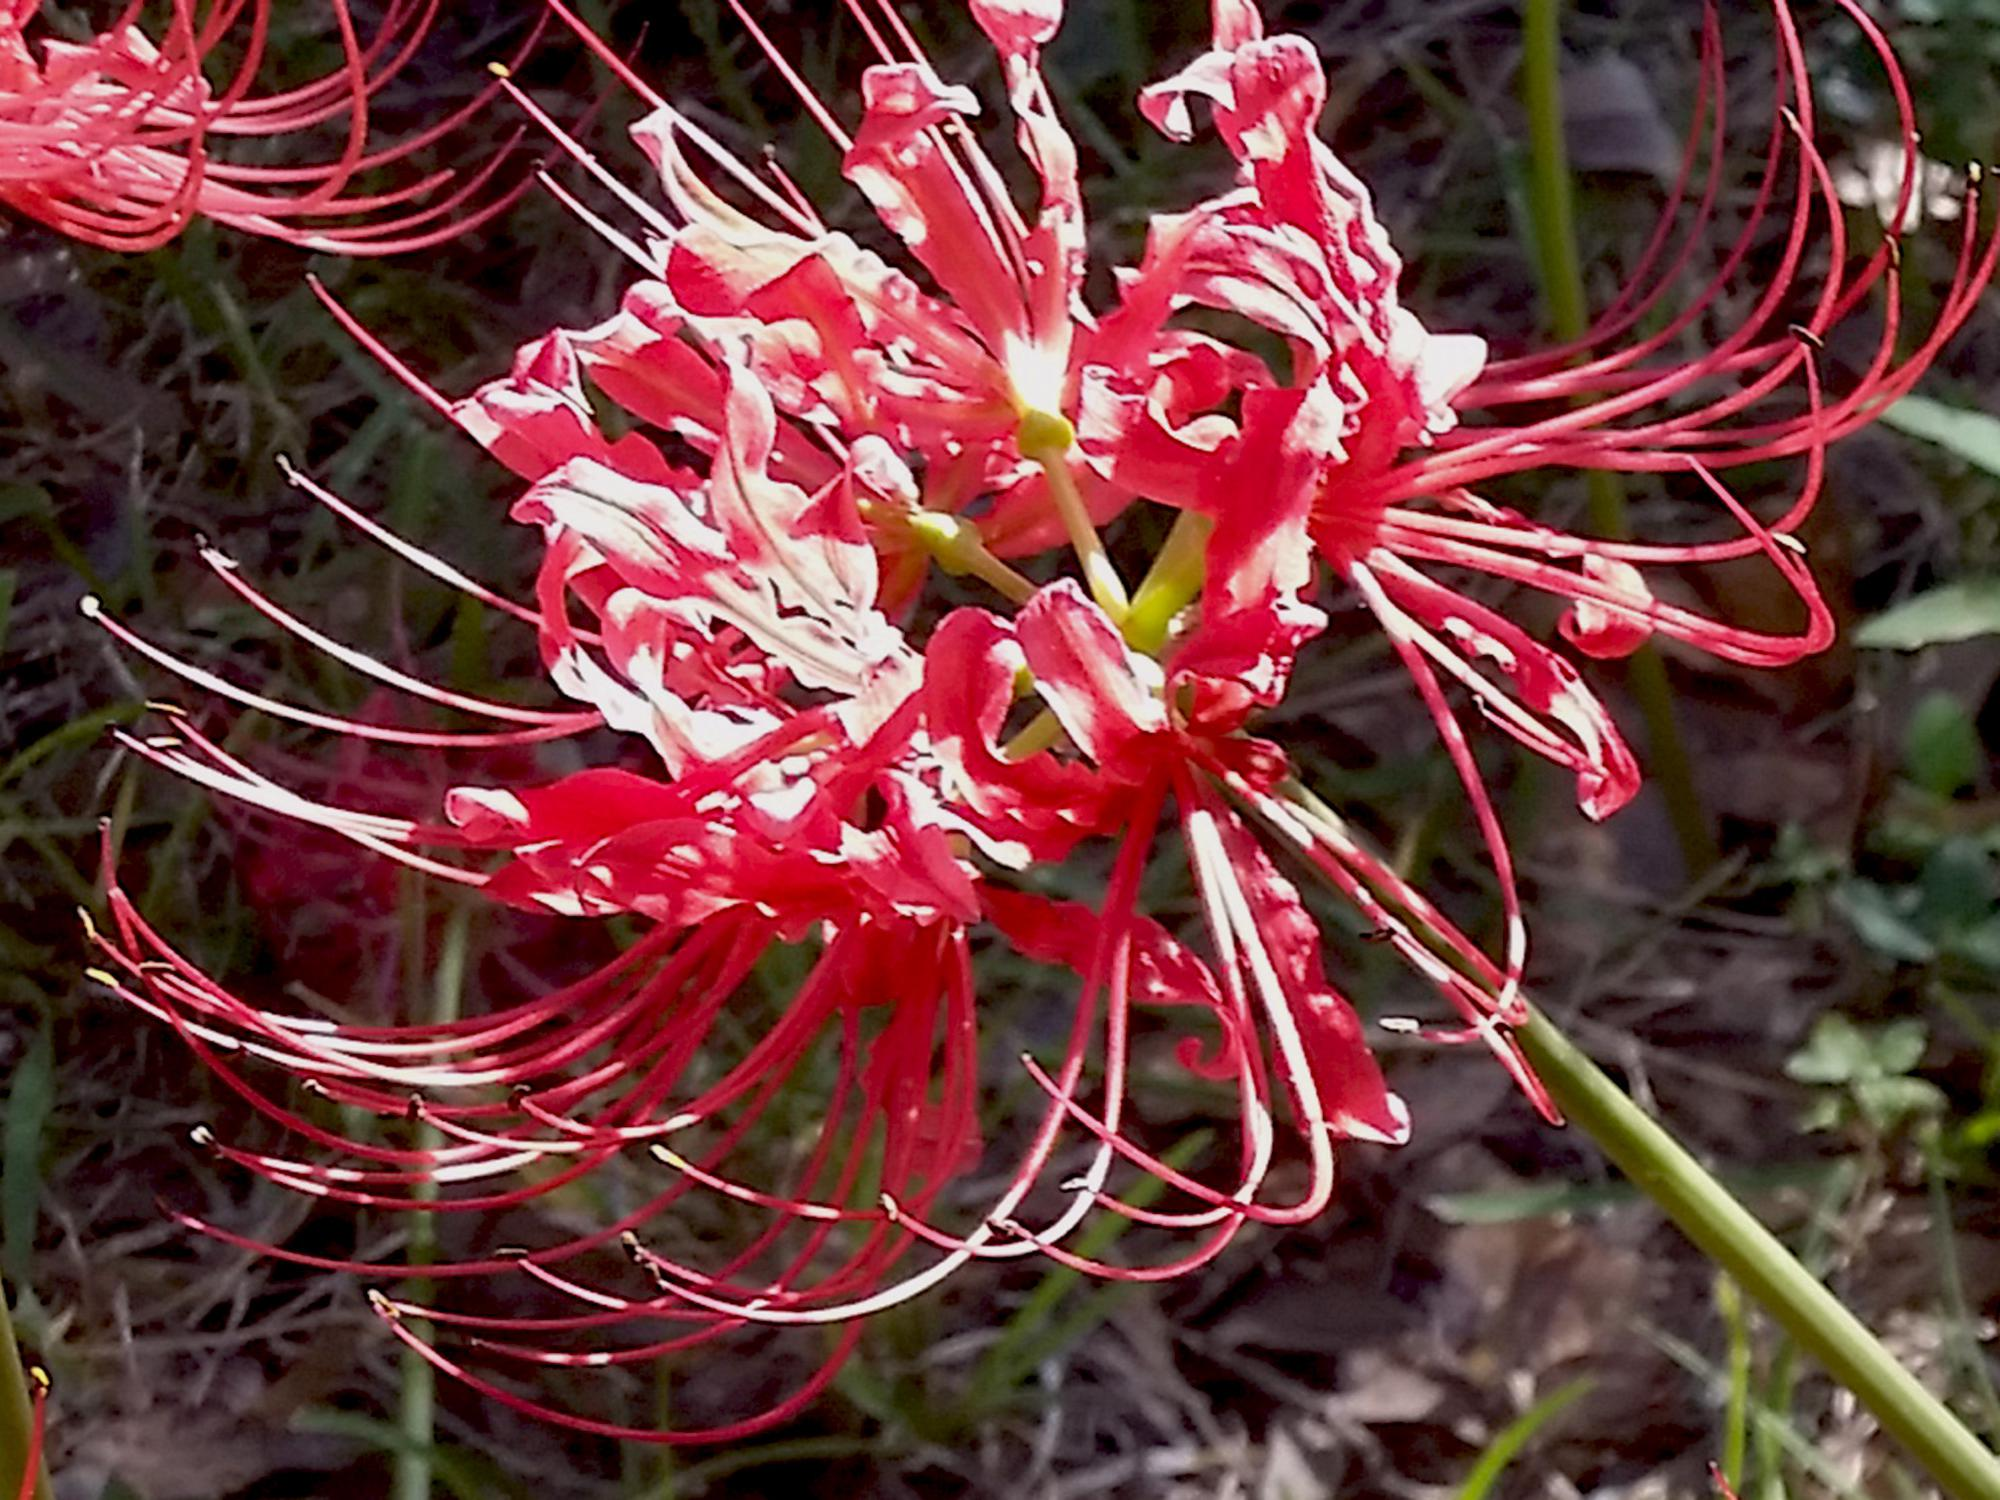 A Lycoris, pink/red flower with no foliage, better known as the spider lily or naked lady.